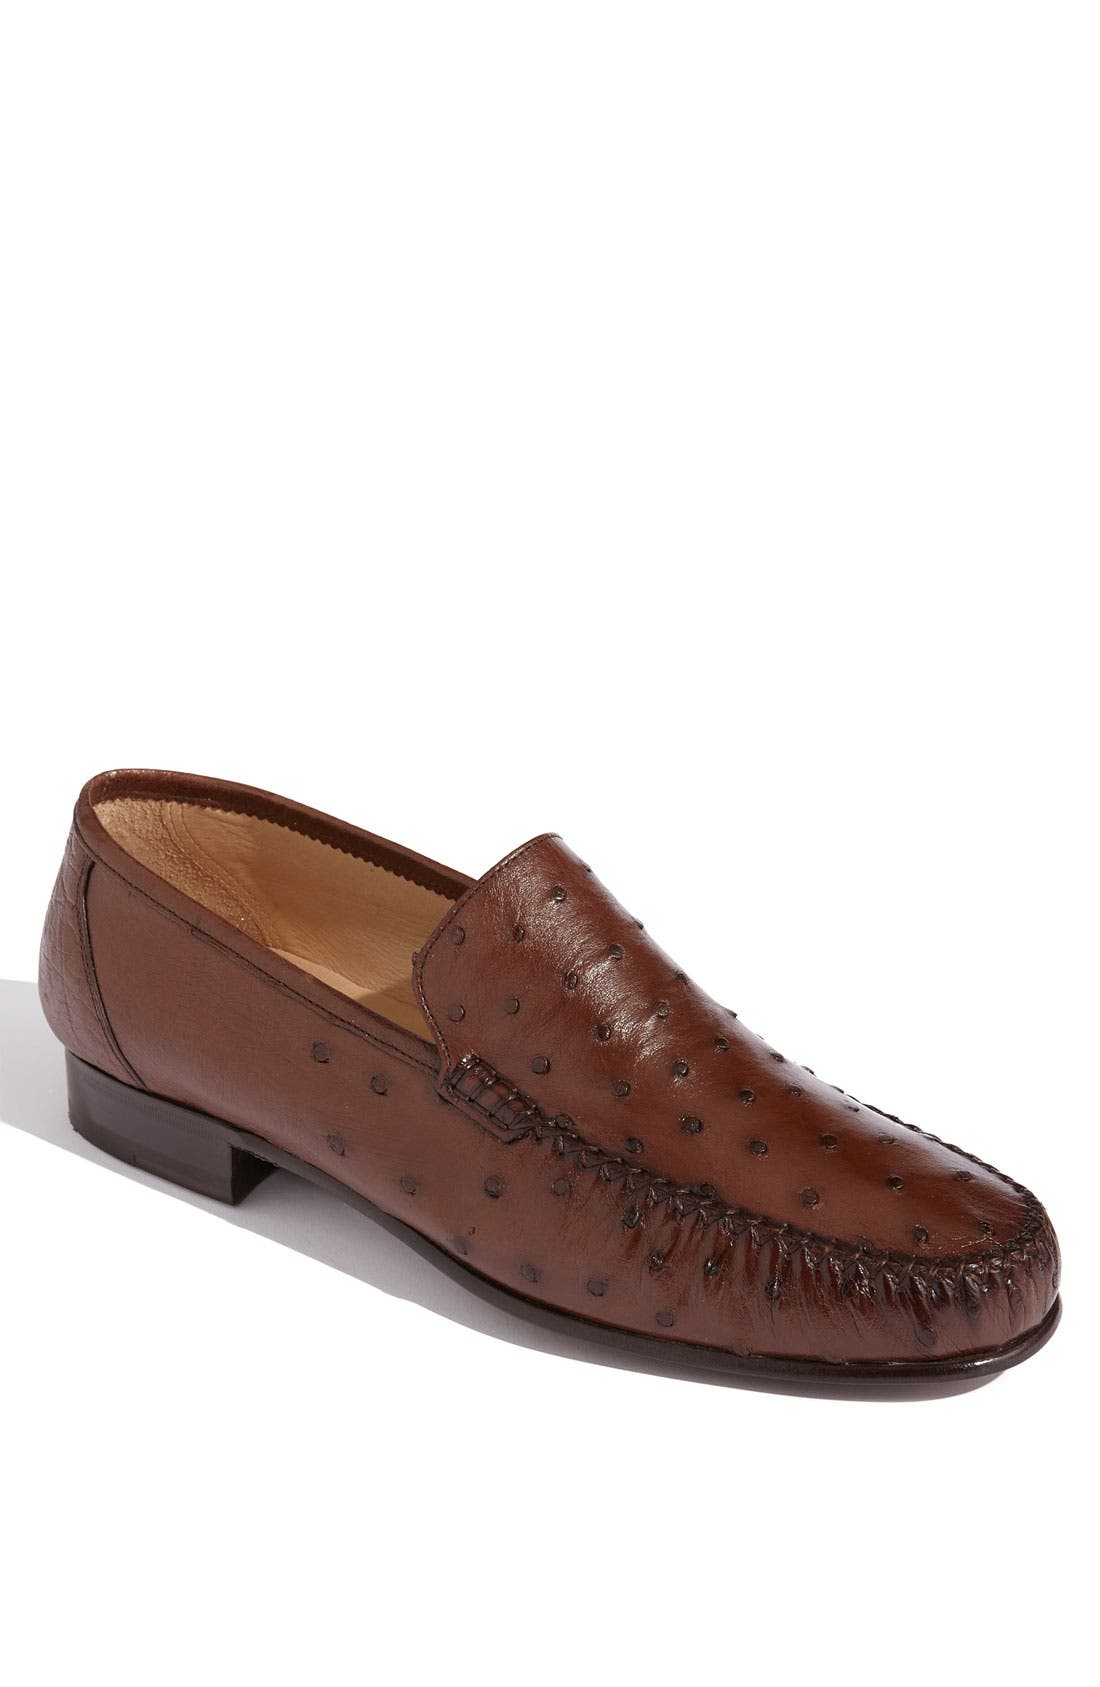 Main Image - Magnanni 'Solea' Ostrich Loafer